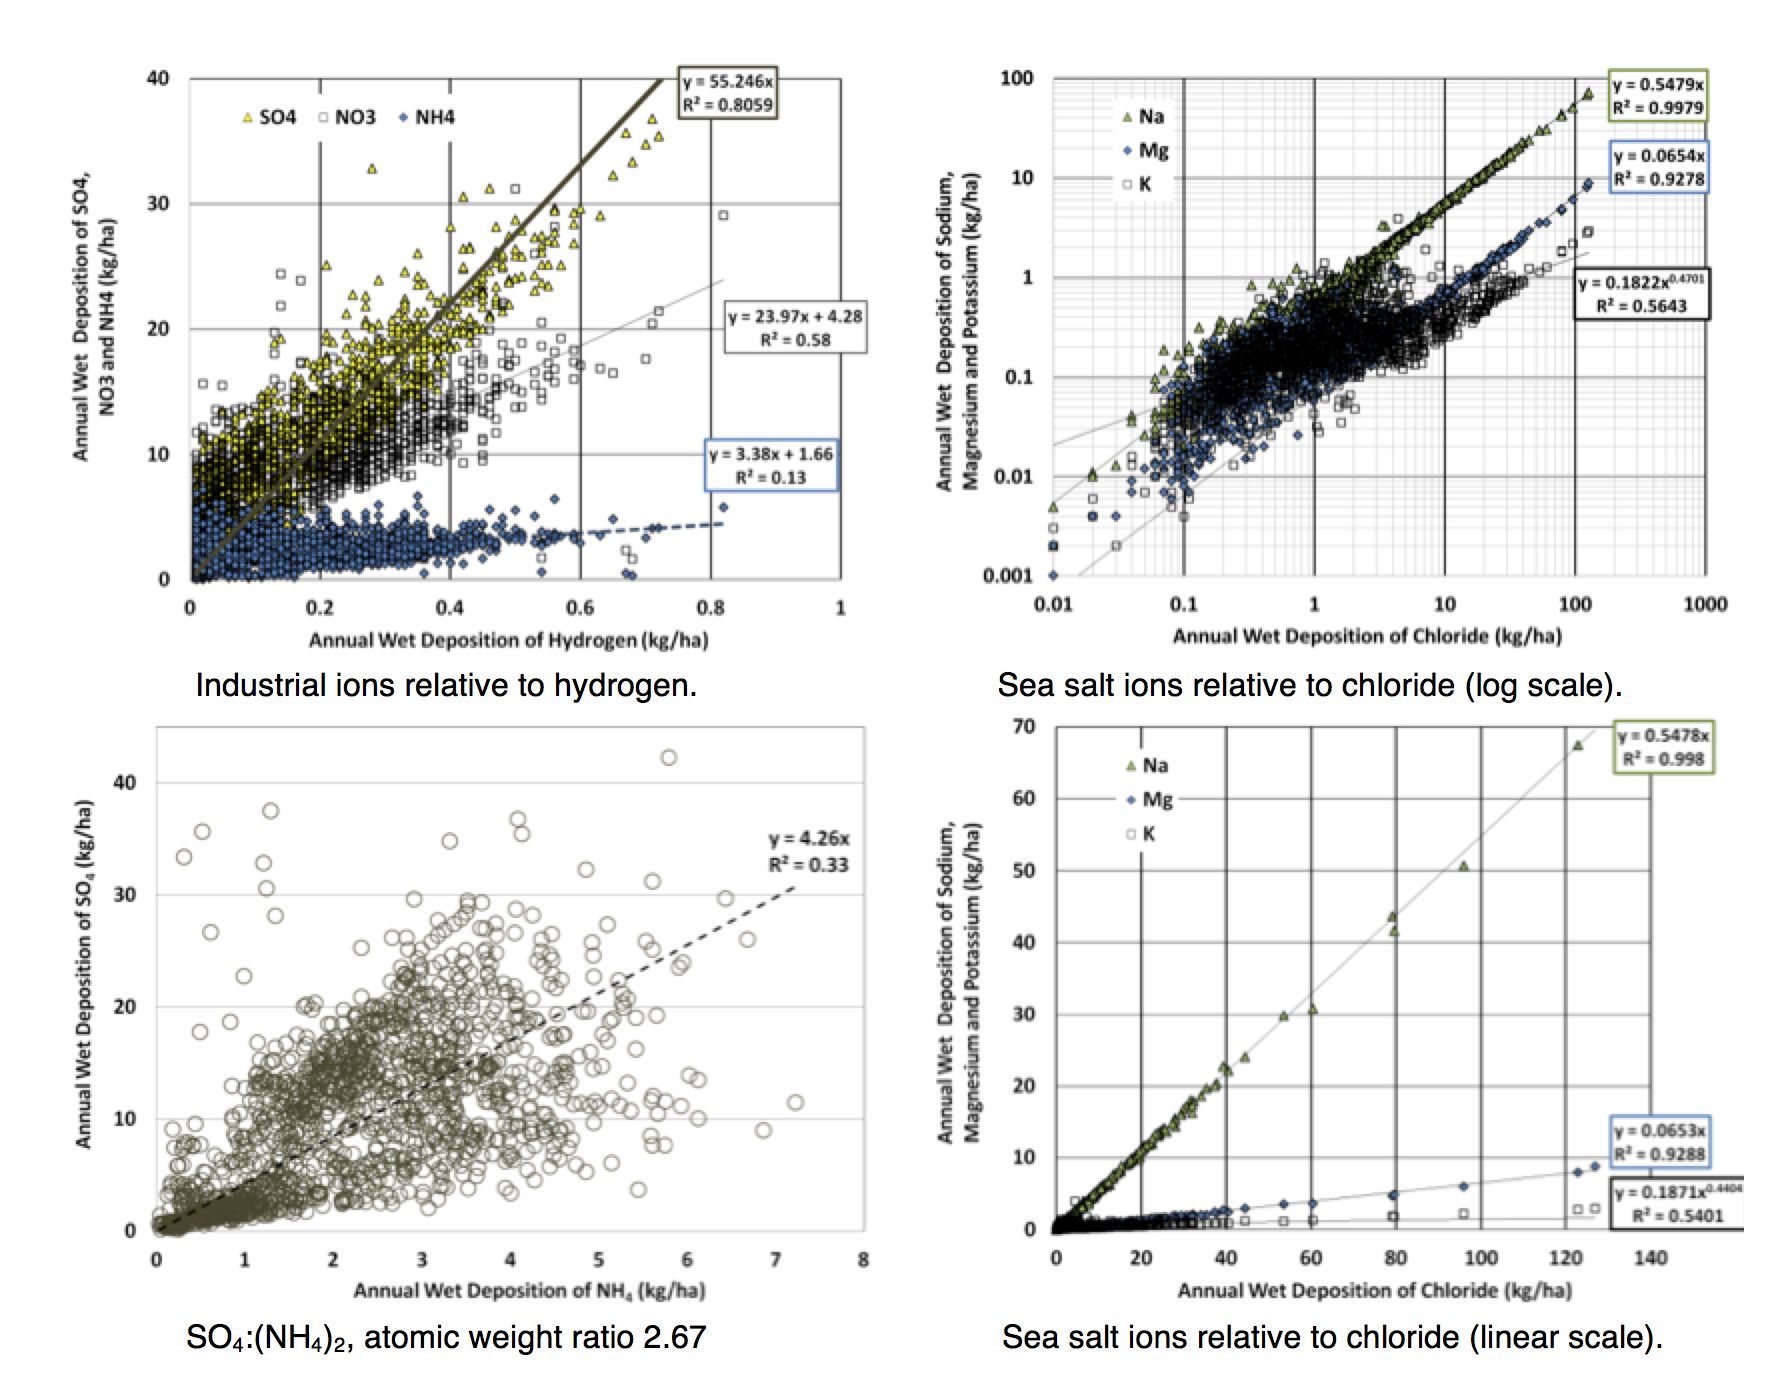 Fig. 7: Correlations among ions in NADP wet deposition data, 2001-2006. selecting insulators using satellite measurements of air pollution Selecting Insulators Using Satellite Measurements of Air Pollution Screen Shot 2016 06 02 at 4